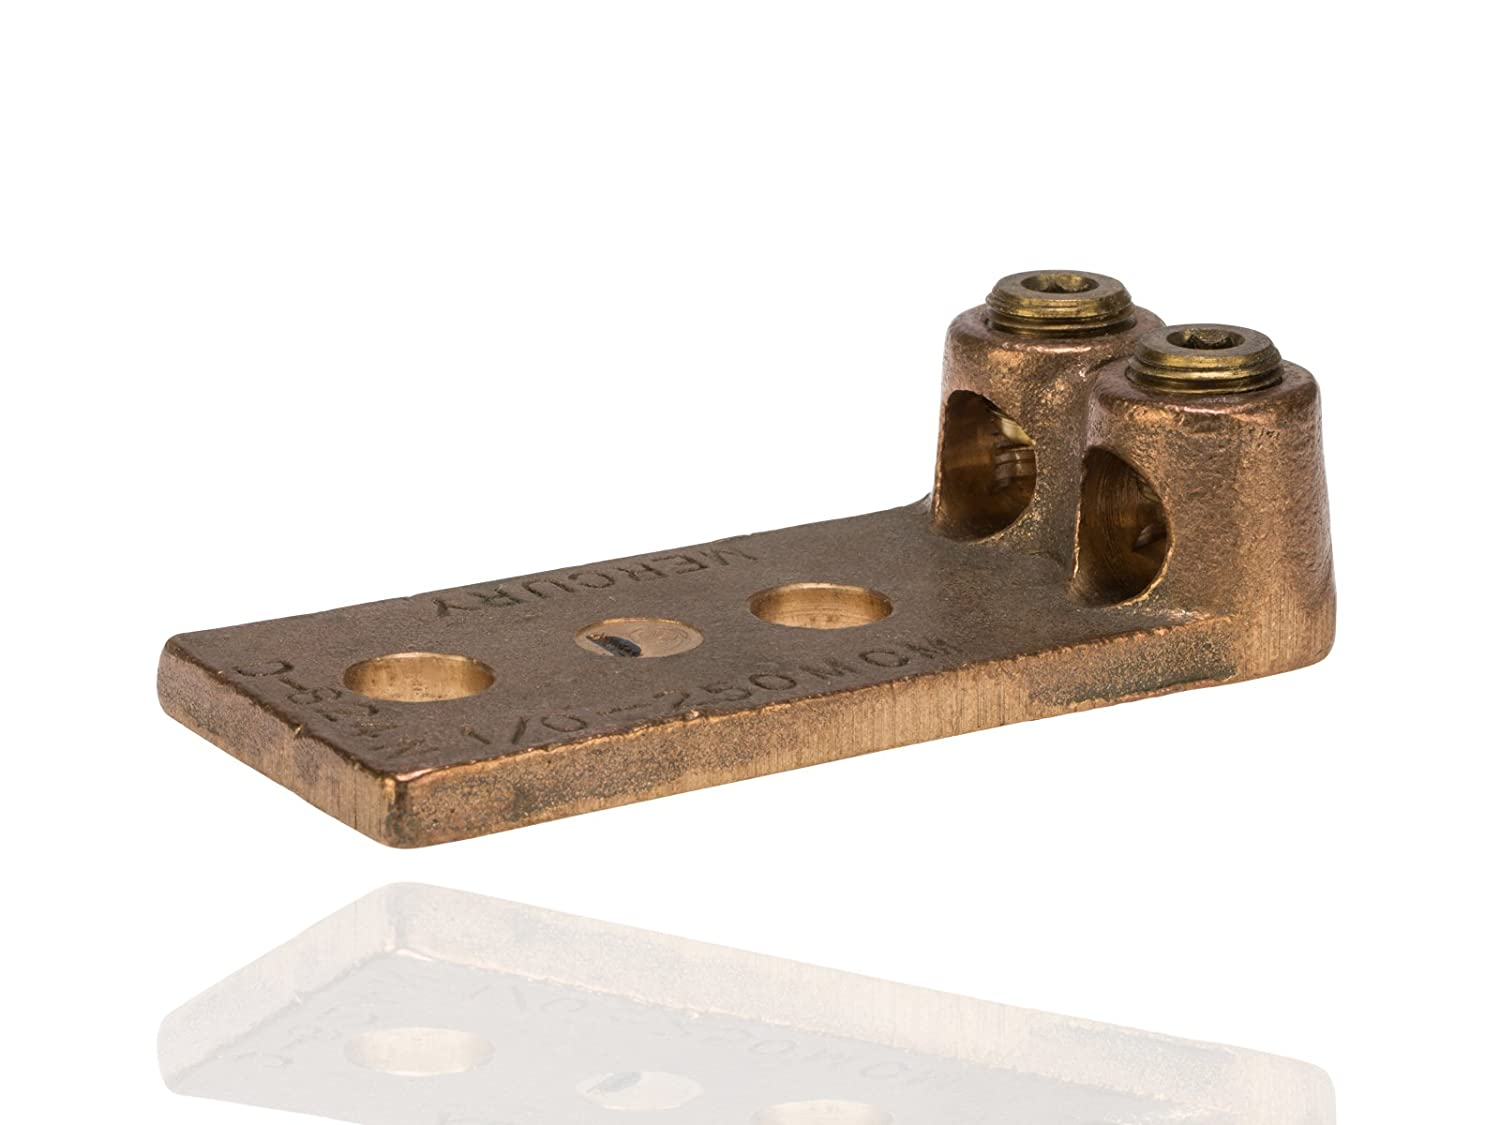 Split Bolt, Post and Tap Connector, Type TL Copper and Cast Bronze Terminal Lug, 4/0 str - 300 MCM Wire Range, 1/2